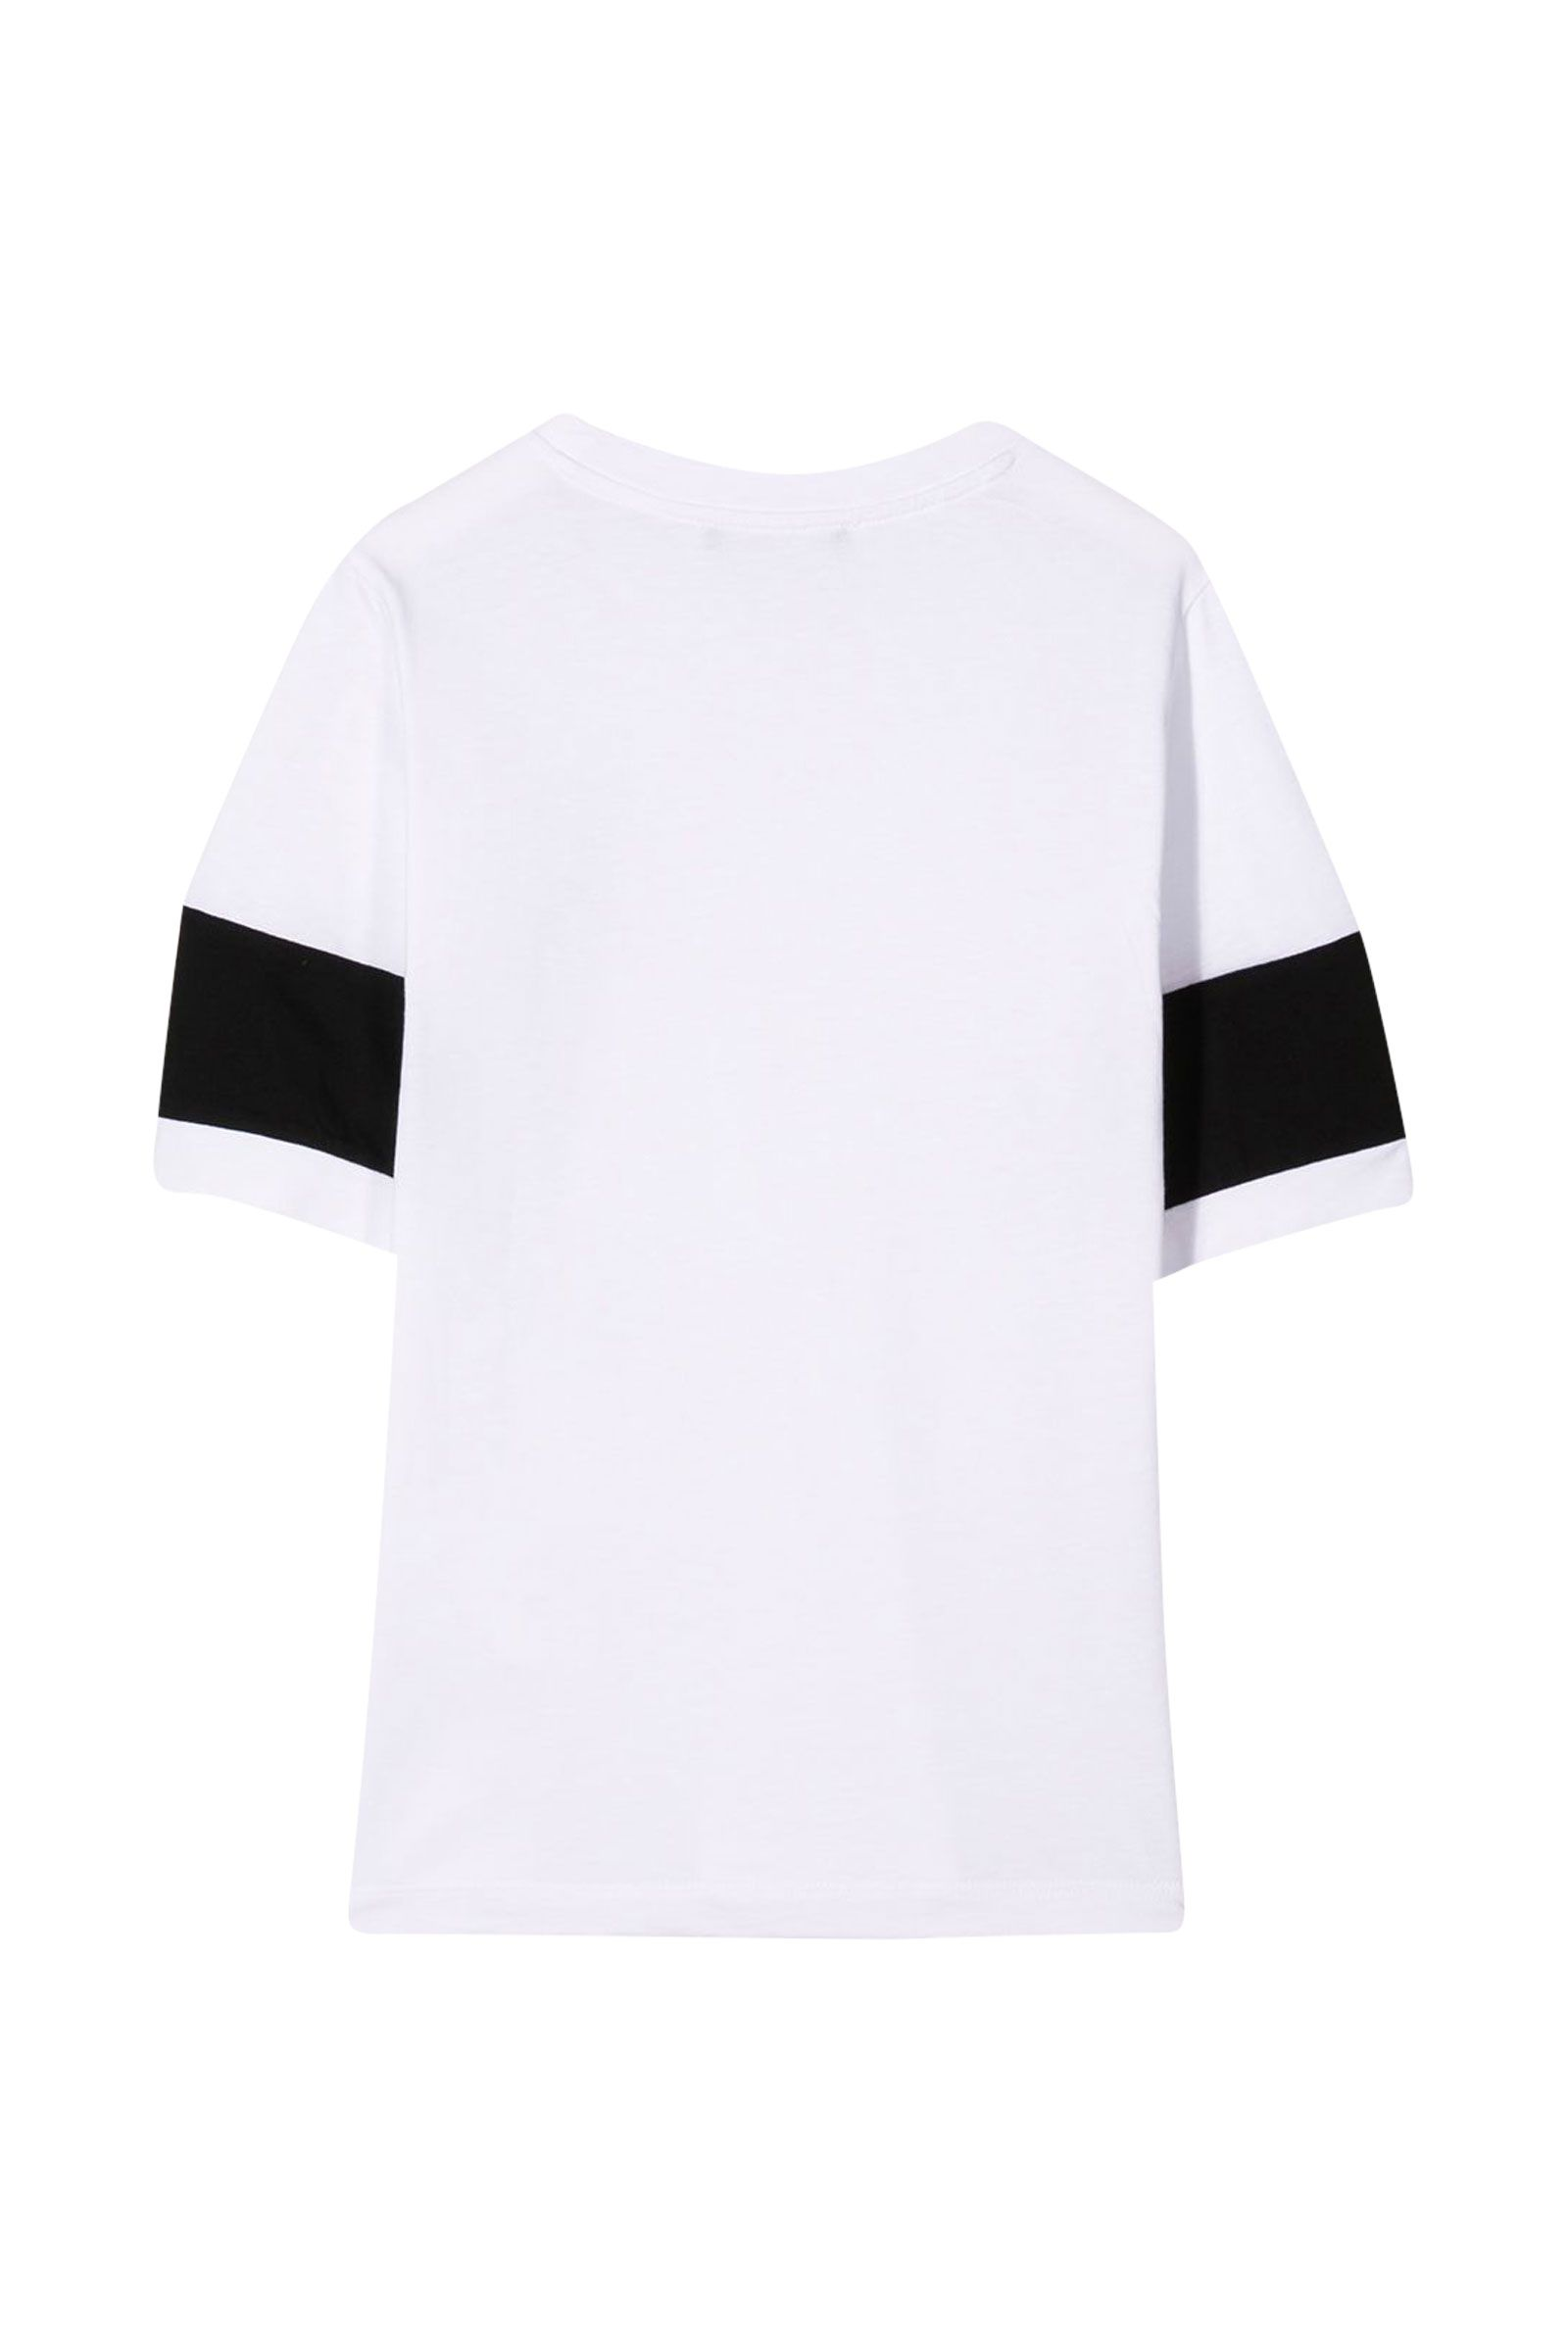 6M8521 / WHITE / B Color Black T-Shirt